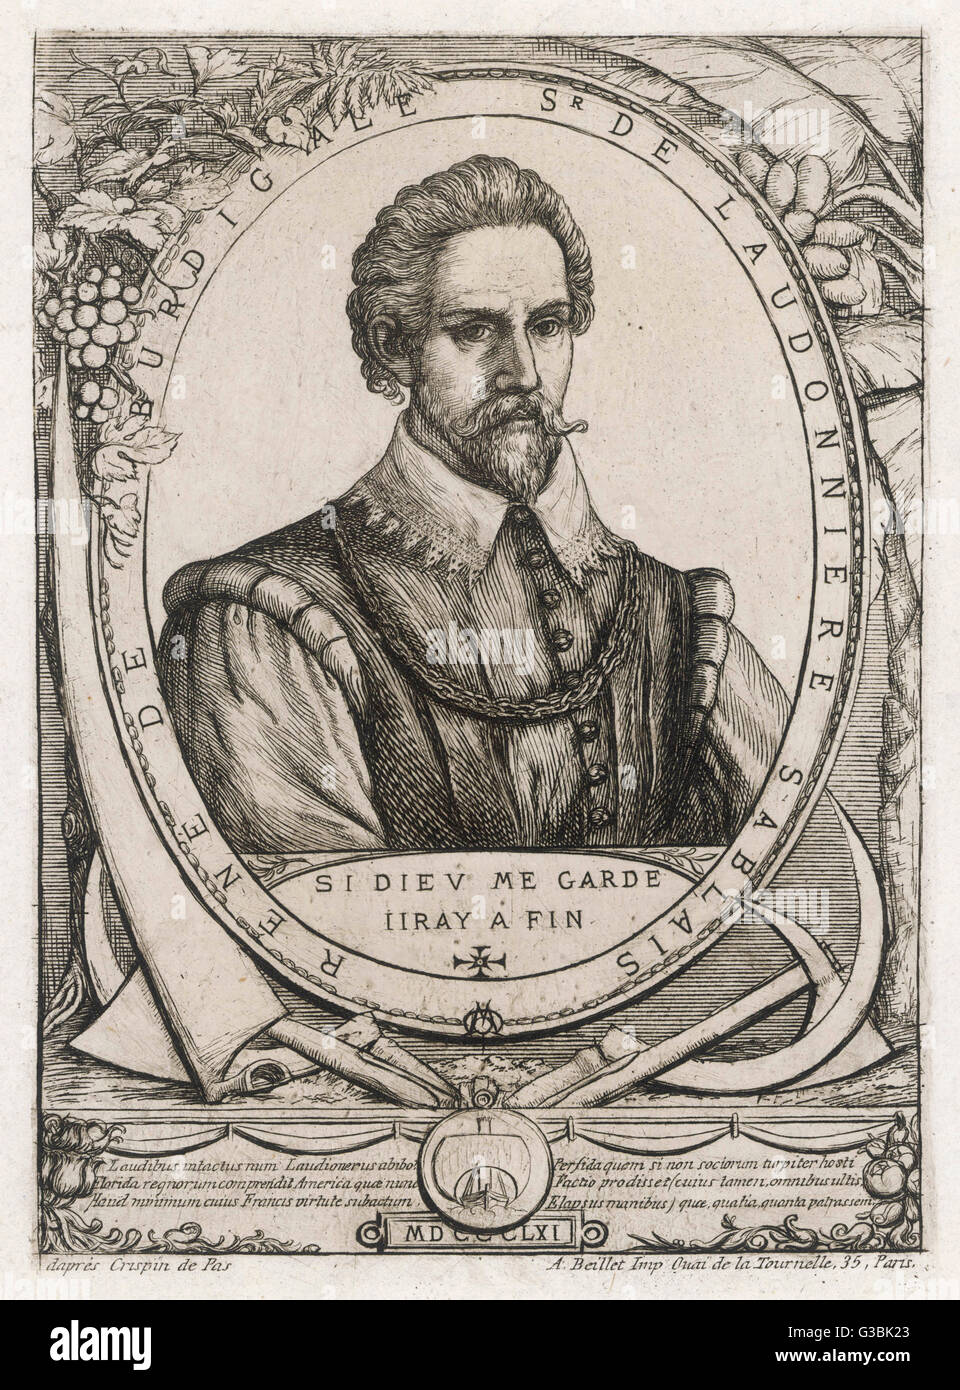 RENE de GOULAINE de  LAUDONNIERE French seaman, founded a  protestant colony in Florida  but it was destroyed by Stock Photo